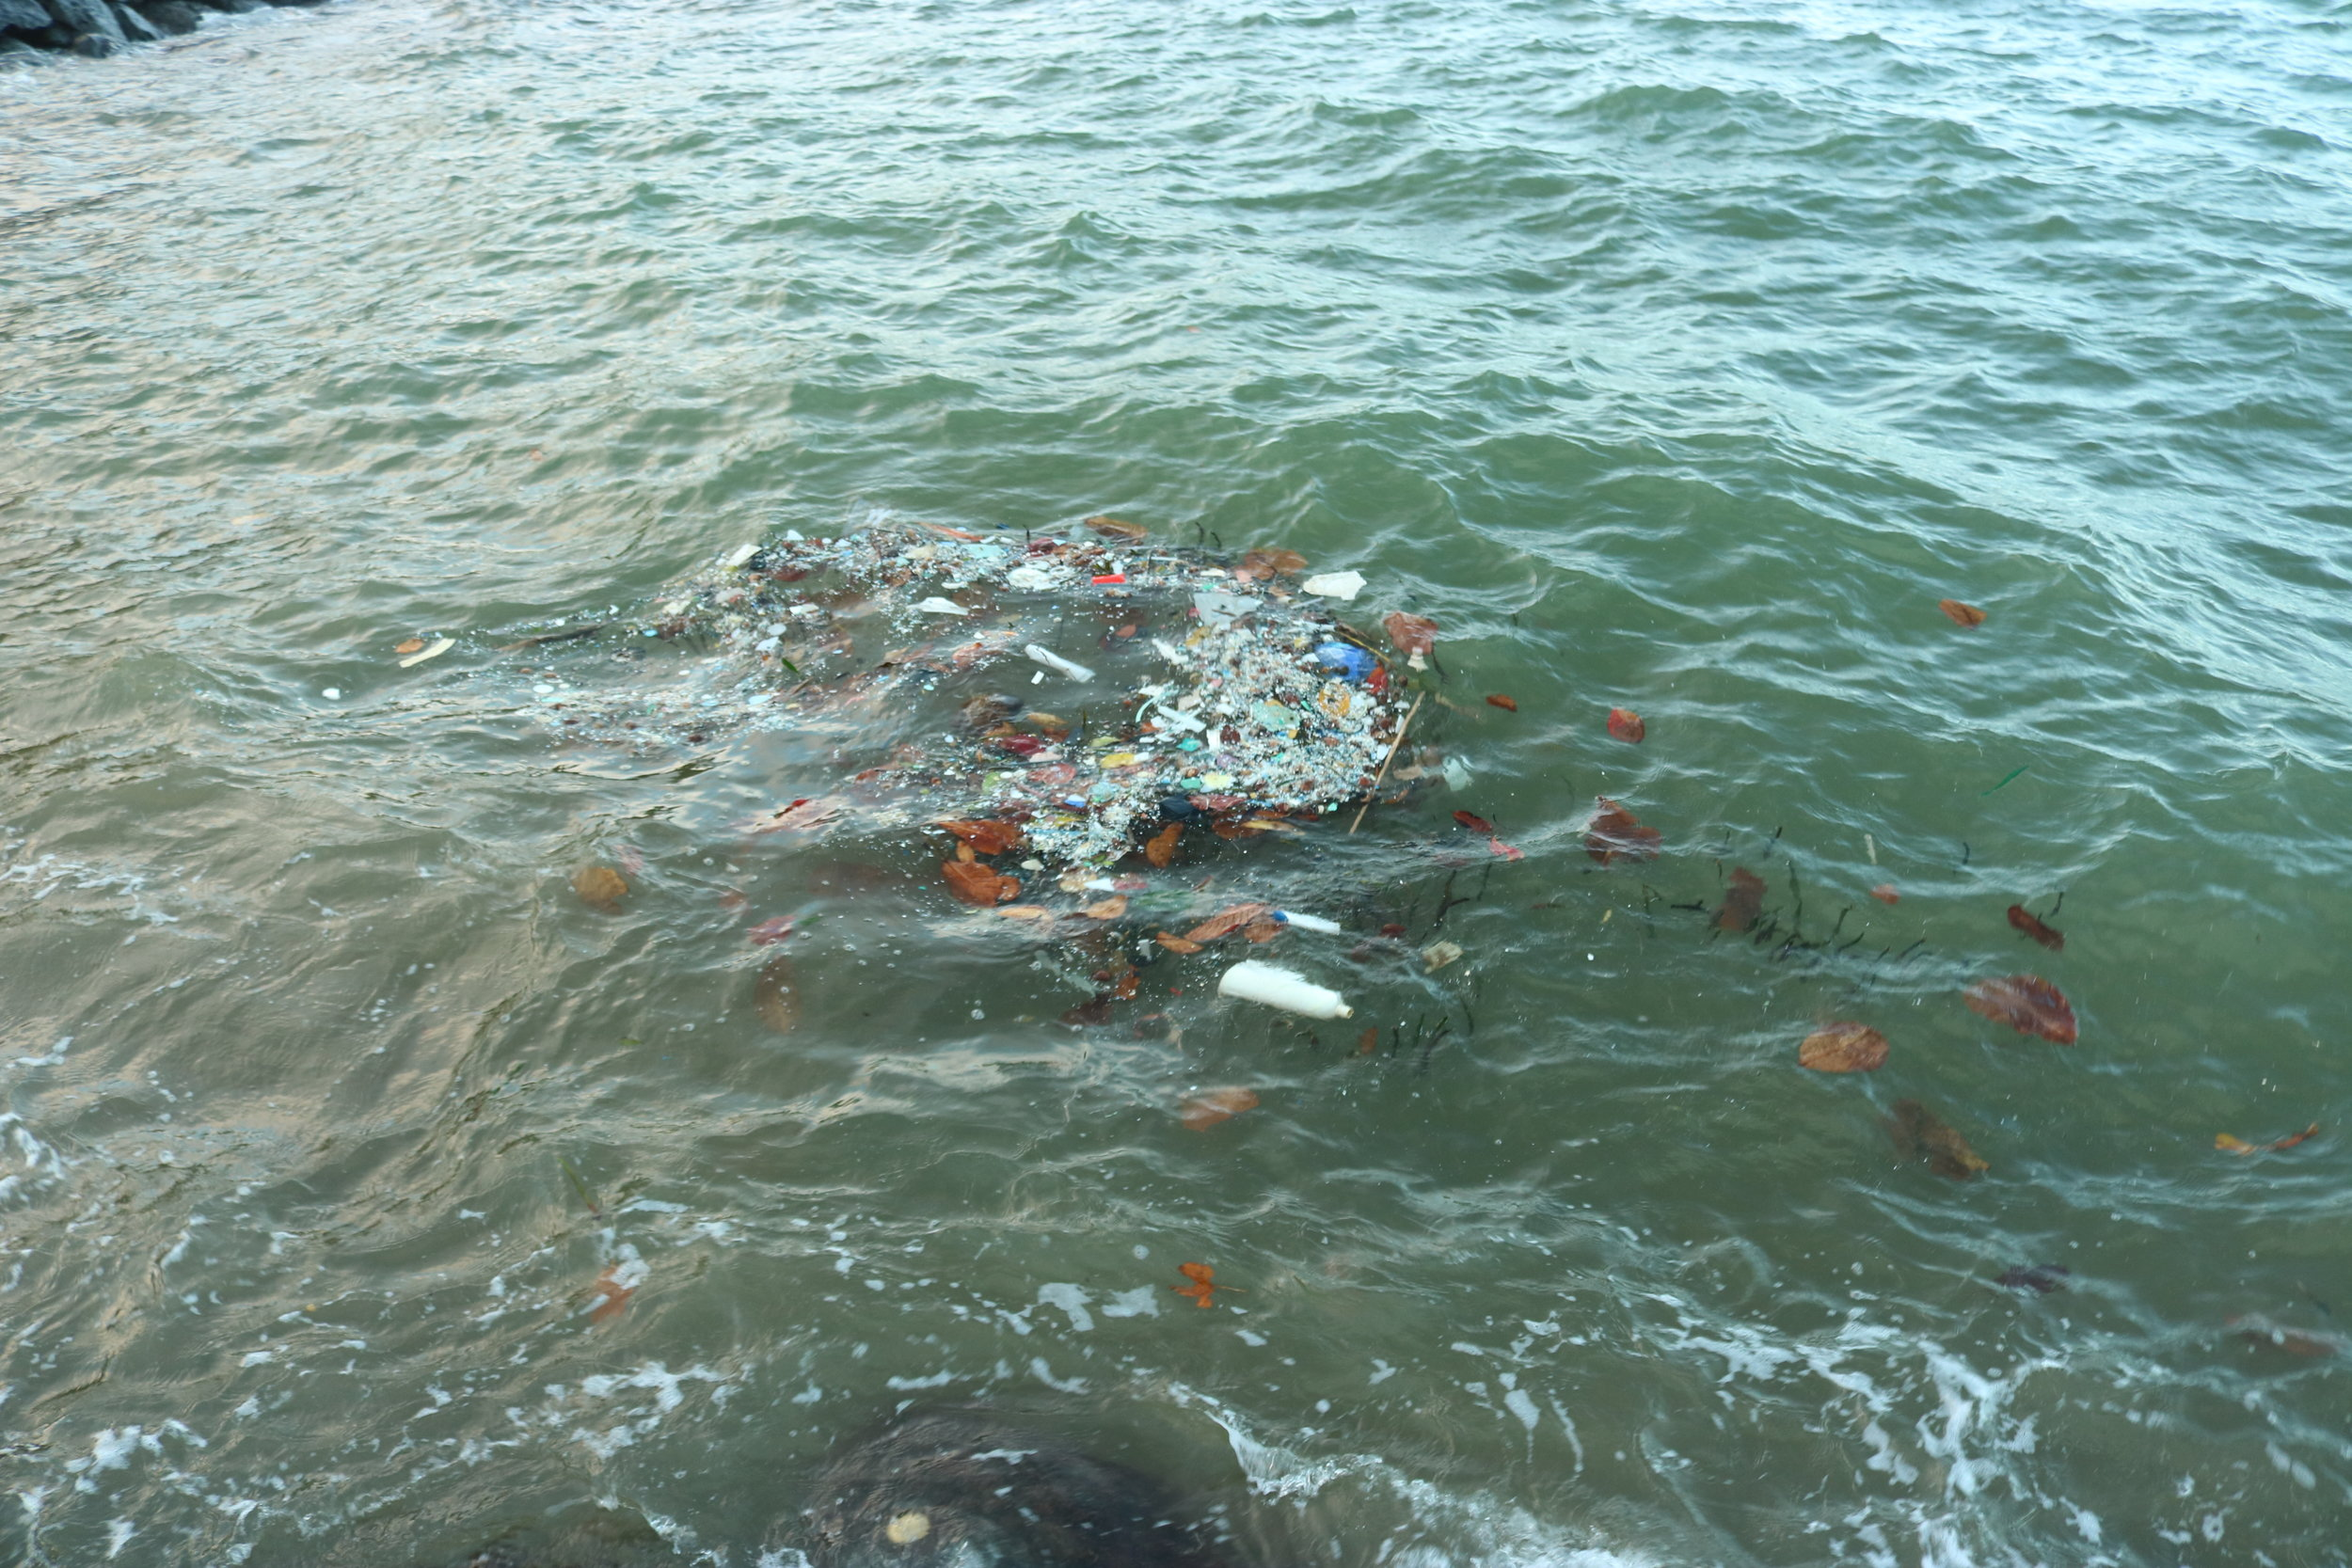 Plastic Ocean, Saving Blue, Save the Ocean, Save Big Blue, Think Disposable, Rethink Plastic, SaltWaterVibes, Getting Rid of Plastic, Ocean issues, What is wrong with our ocean, save the seas, plastic production, plastic pollution, plastic issues